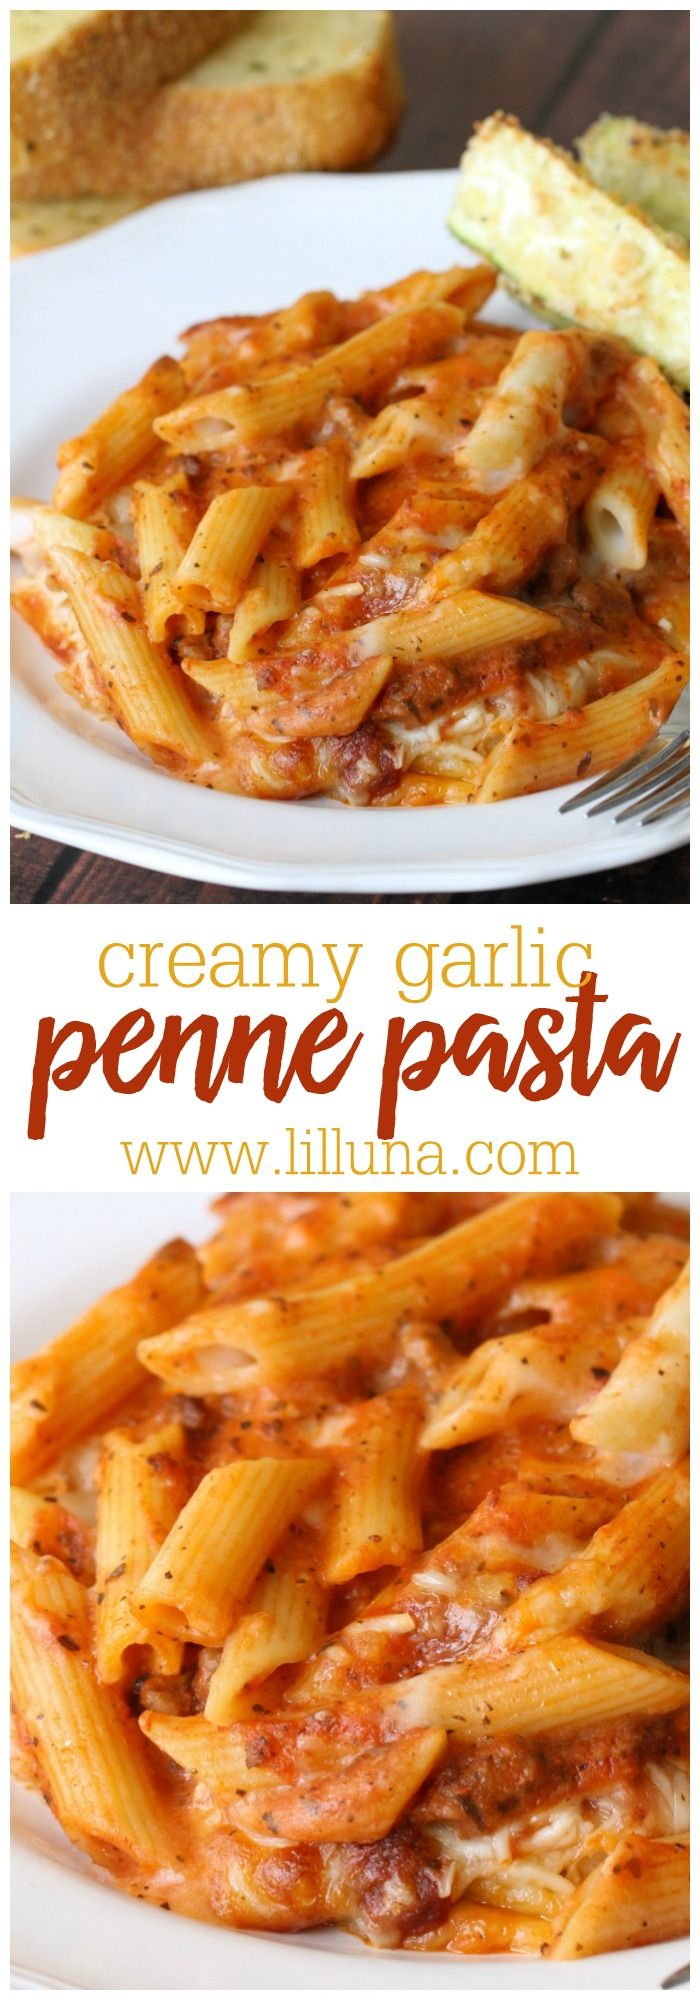 One of the best Italian recipes ever- Mozzarella Penne! BEYOND delicious! { lilluna.com } So creamy with lots of flavor!! Includes sausage, tomato sauce, tons of seasonings, and cheeses!!